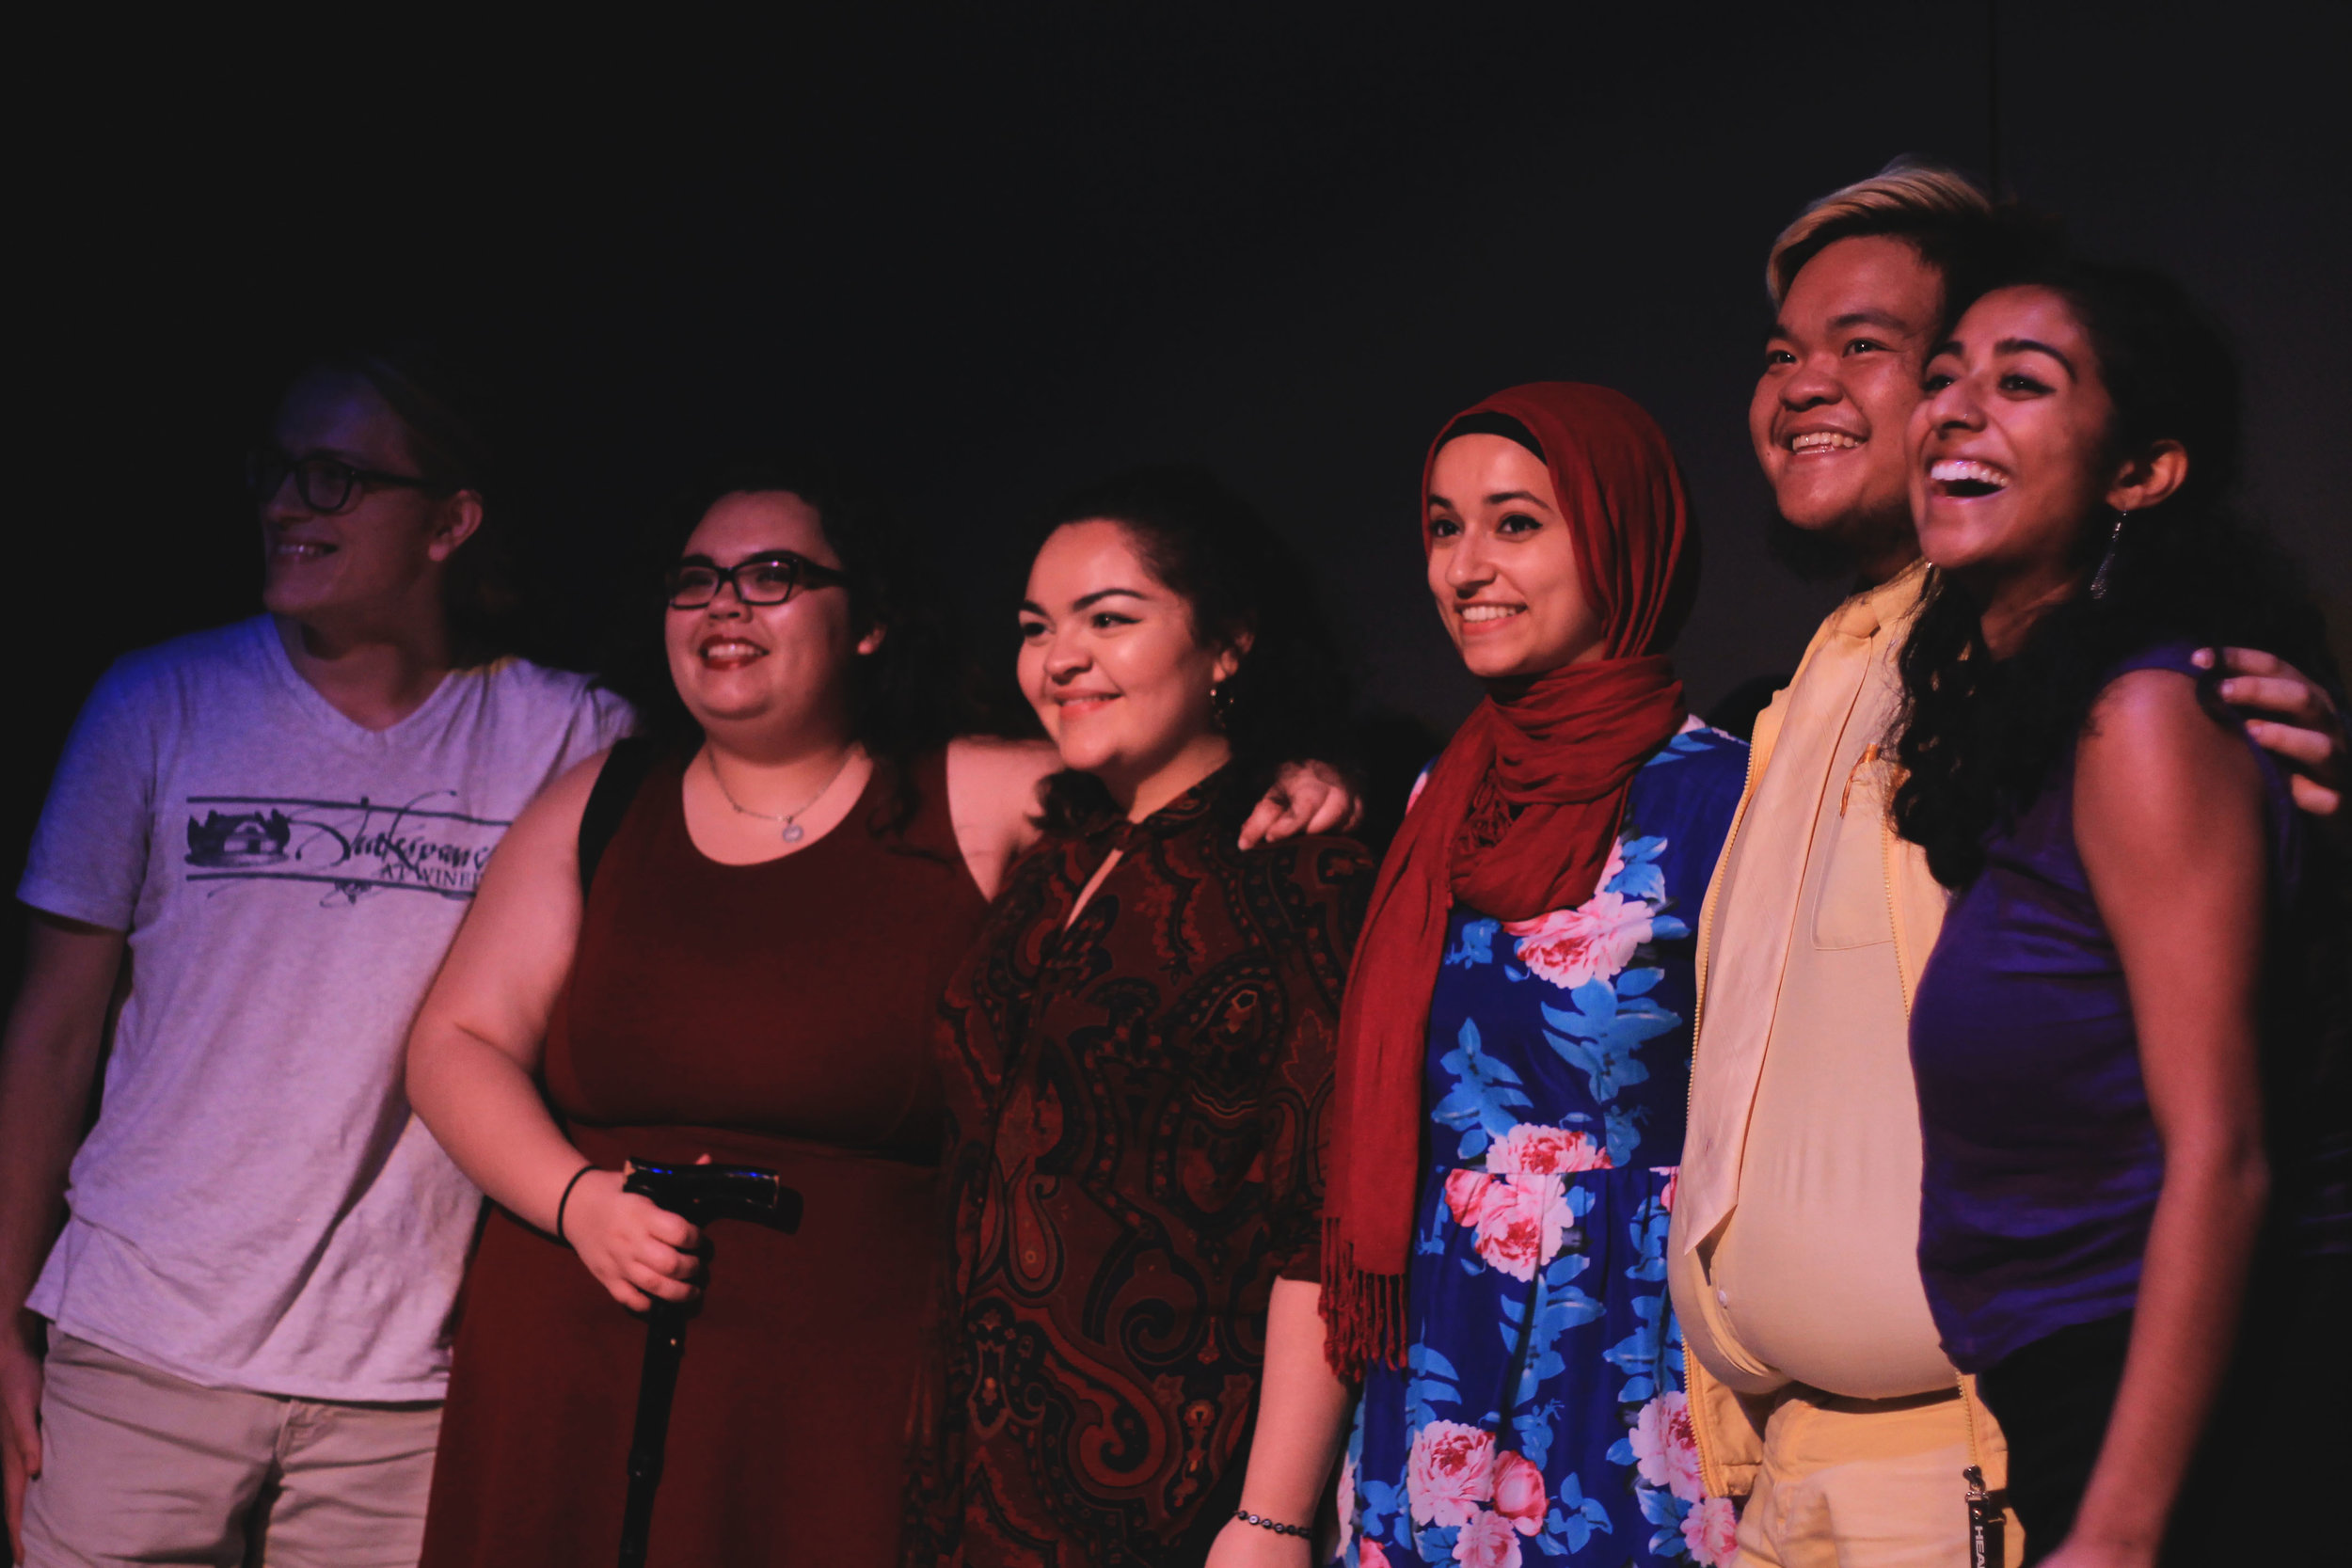 Asa Johnson, Jasmine Bell, Bianca Perez, Noor Wadi and Philip Oh are the five Spitshine contestants who will be representing UT at CUPSI in Chicago in April.